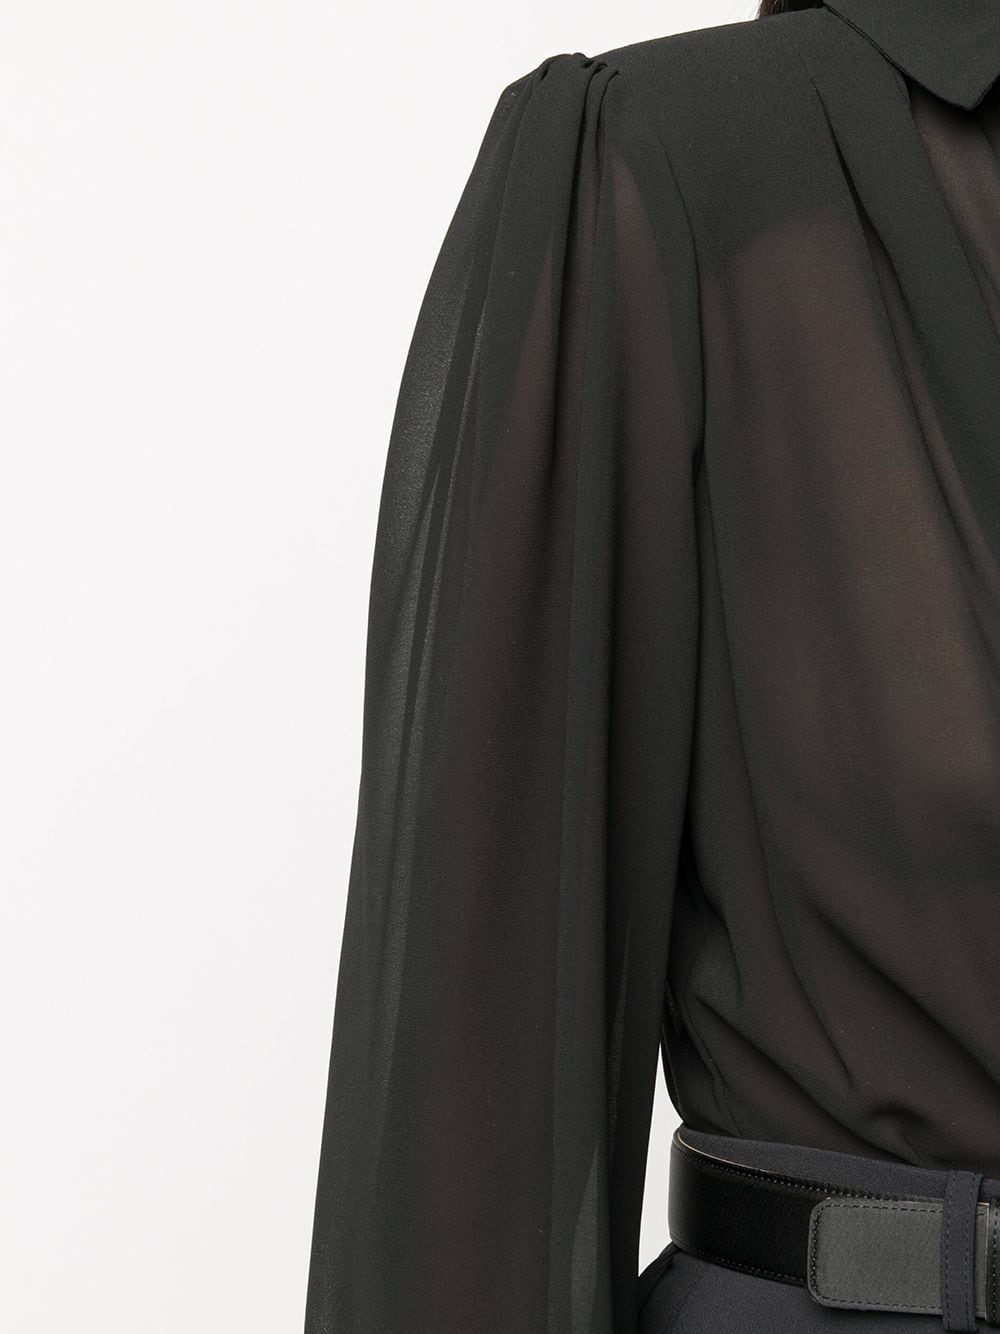 Picture of Elisabetta Franchi | Body Shirt